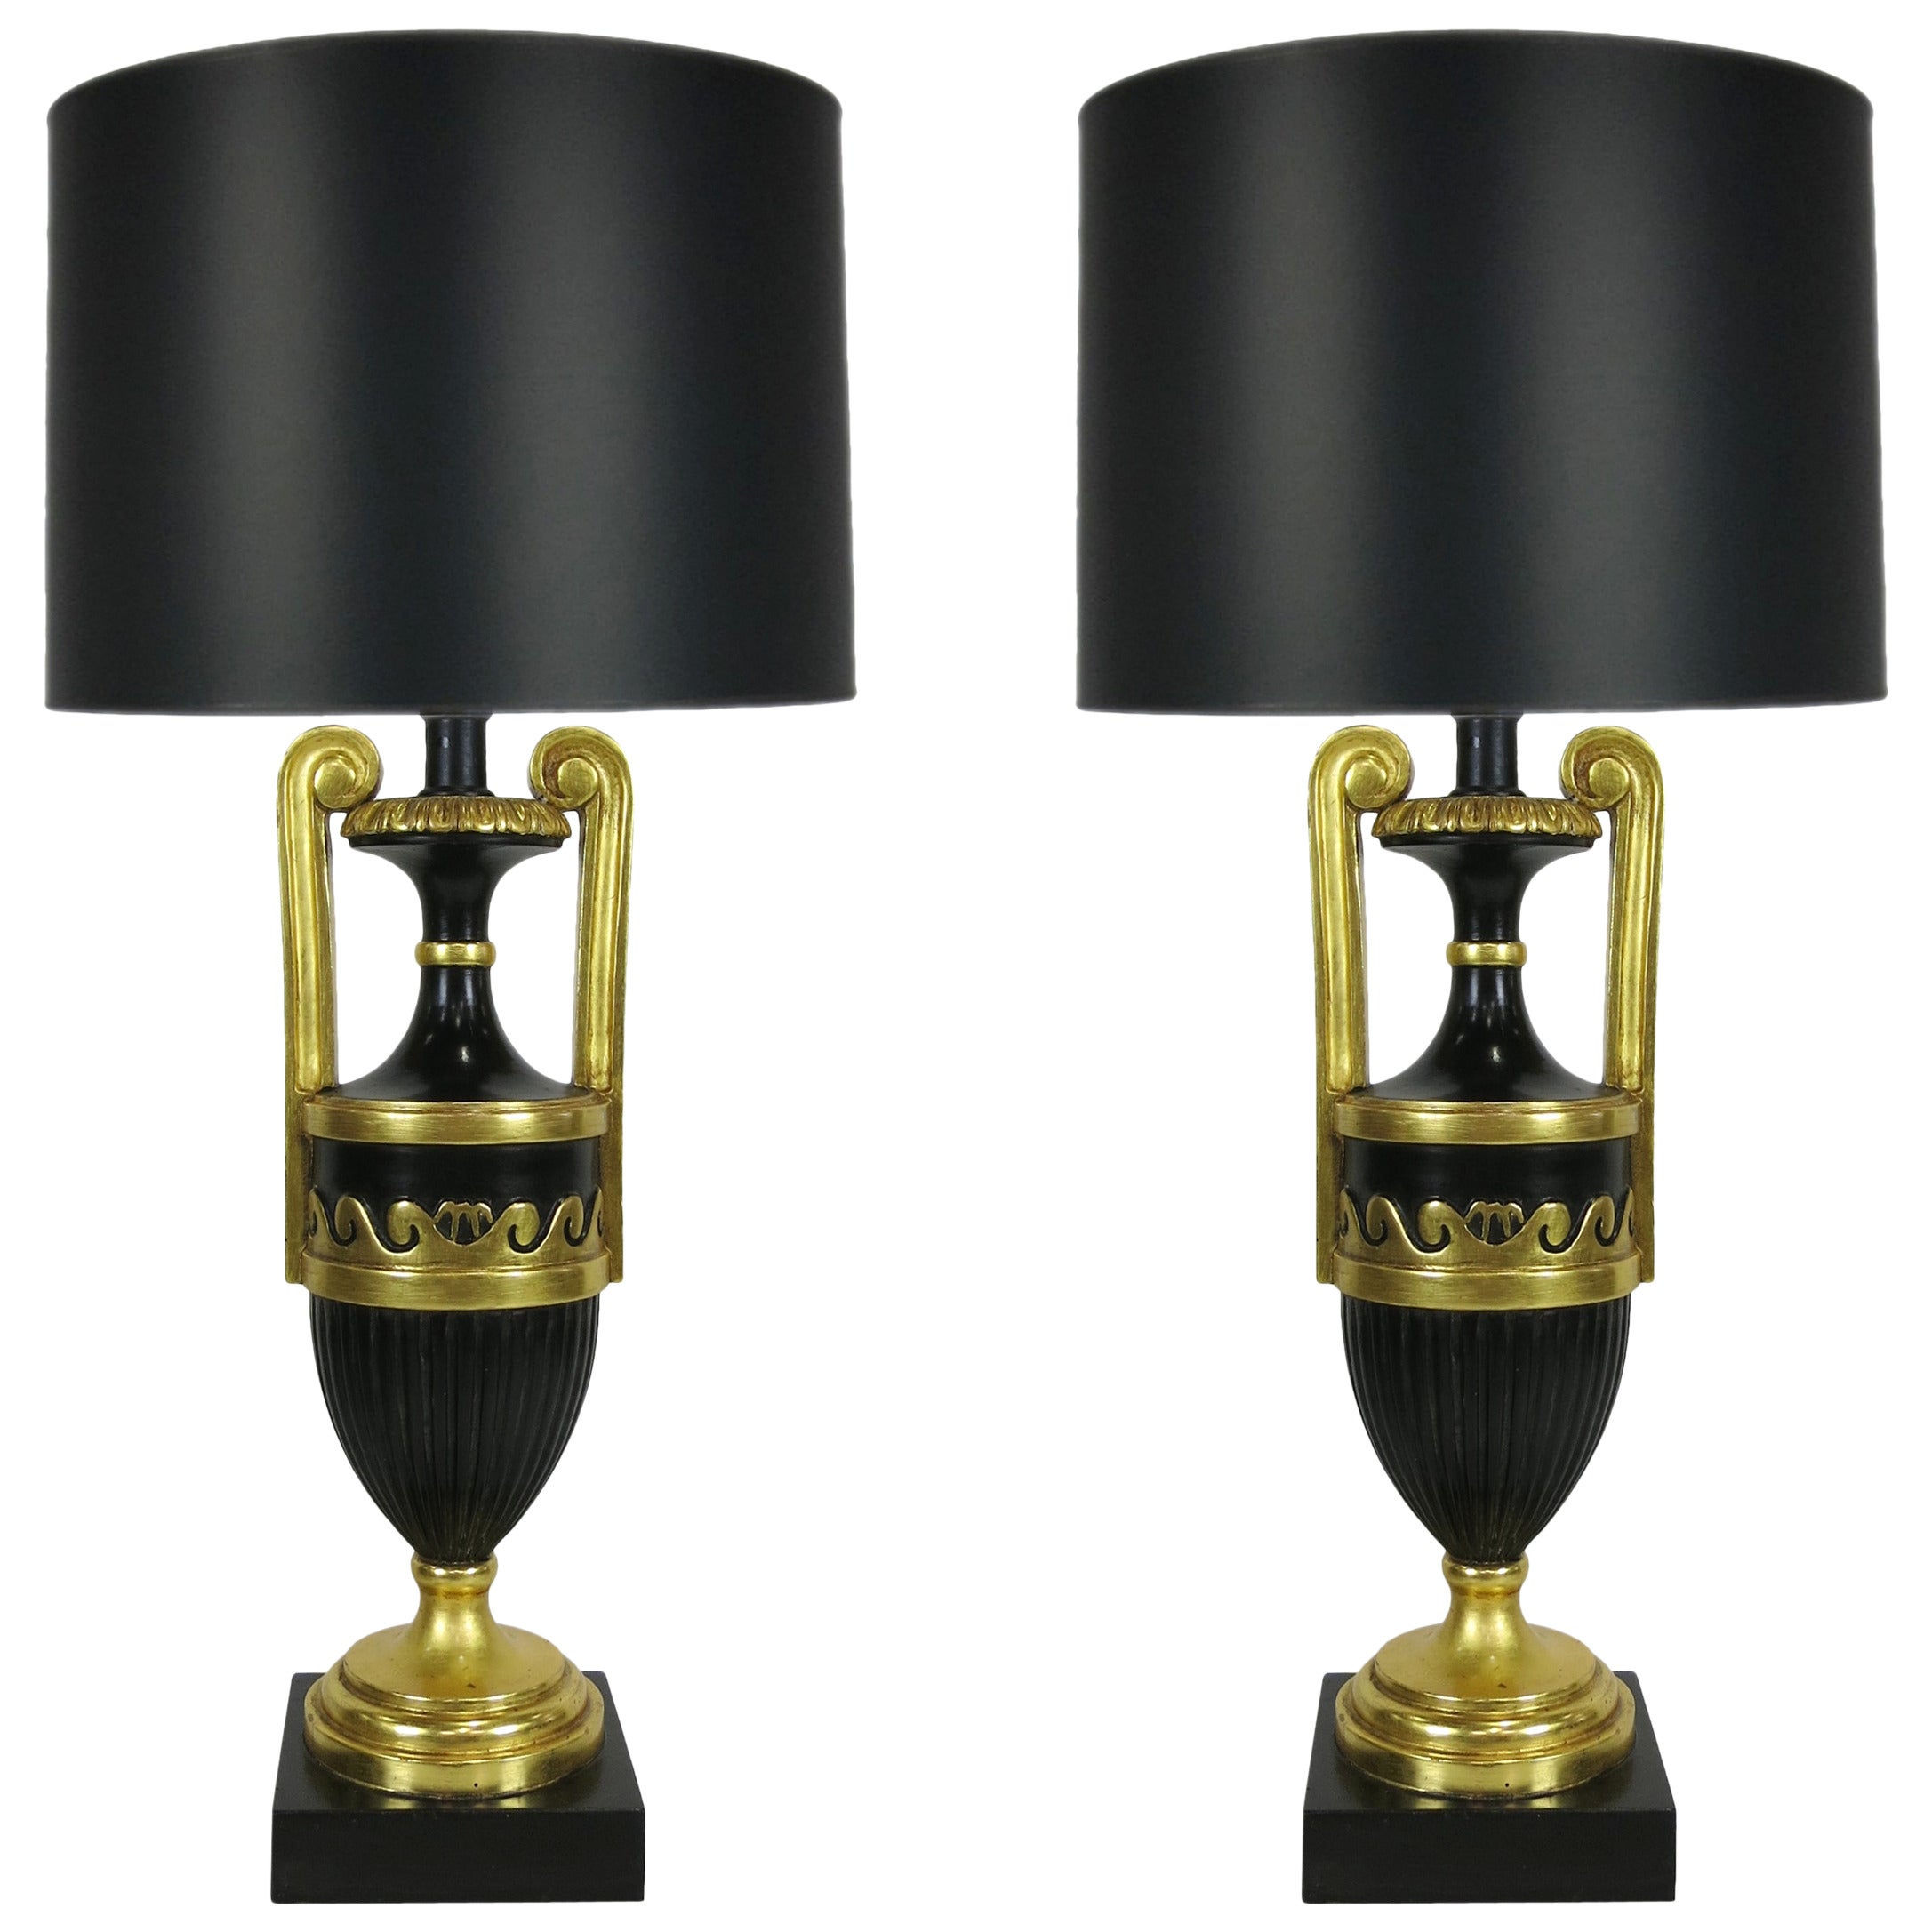 Pair of Neoclassical Ebony and Giltwood Table Lamps by Marbro